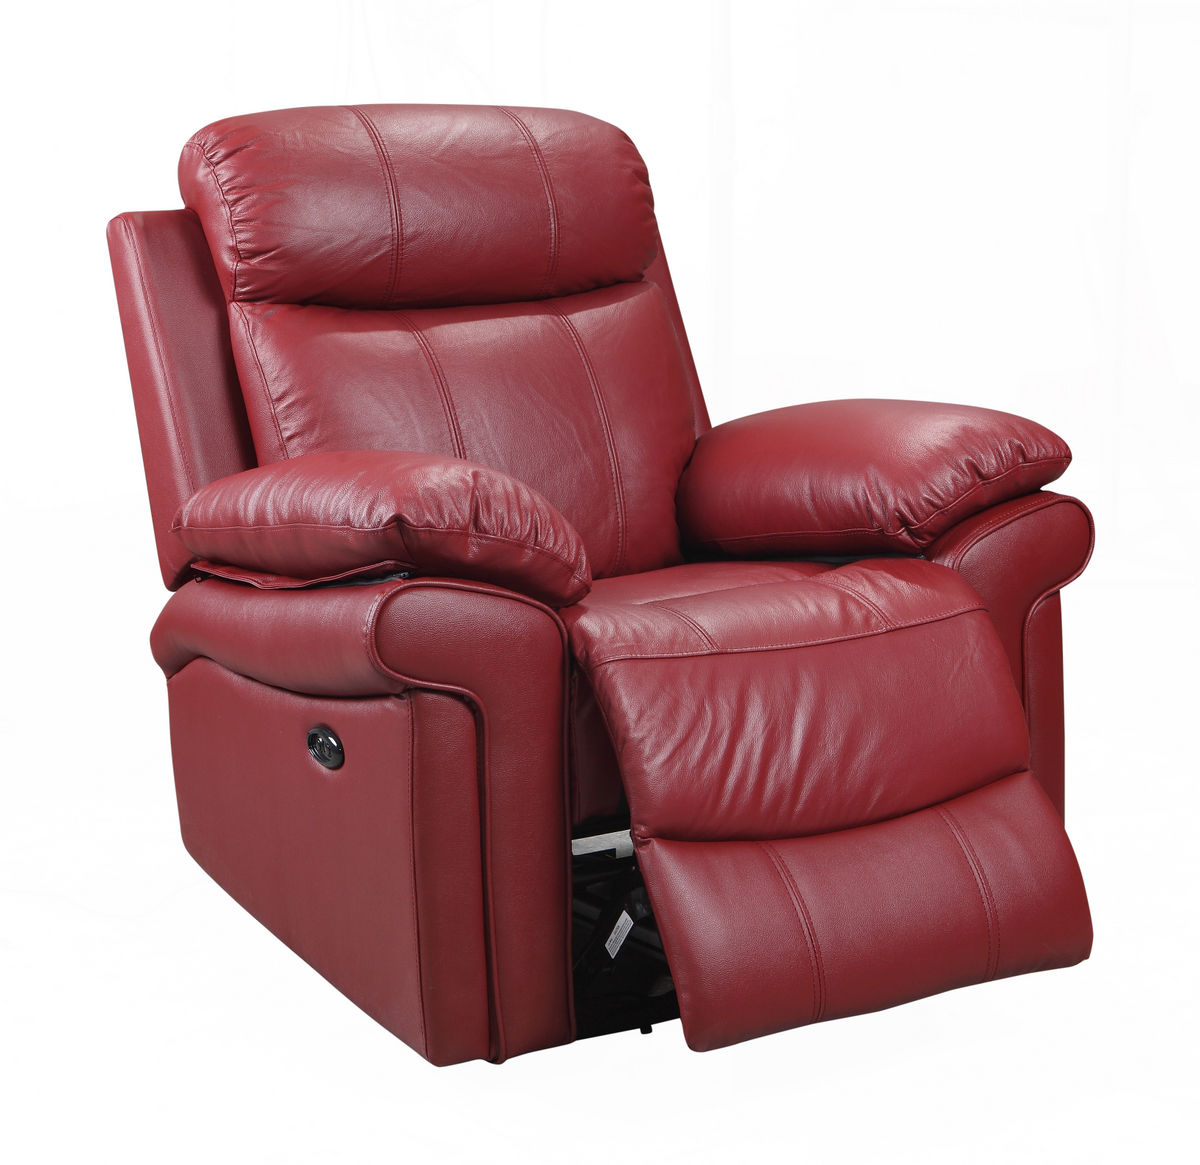 Joplin Power Leather Reclining Sofa in Red | Sofas and Sectionals